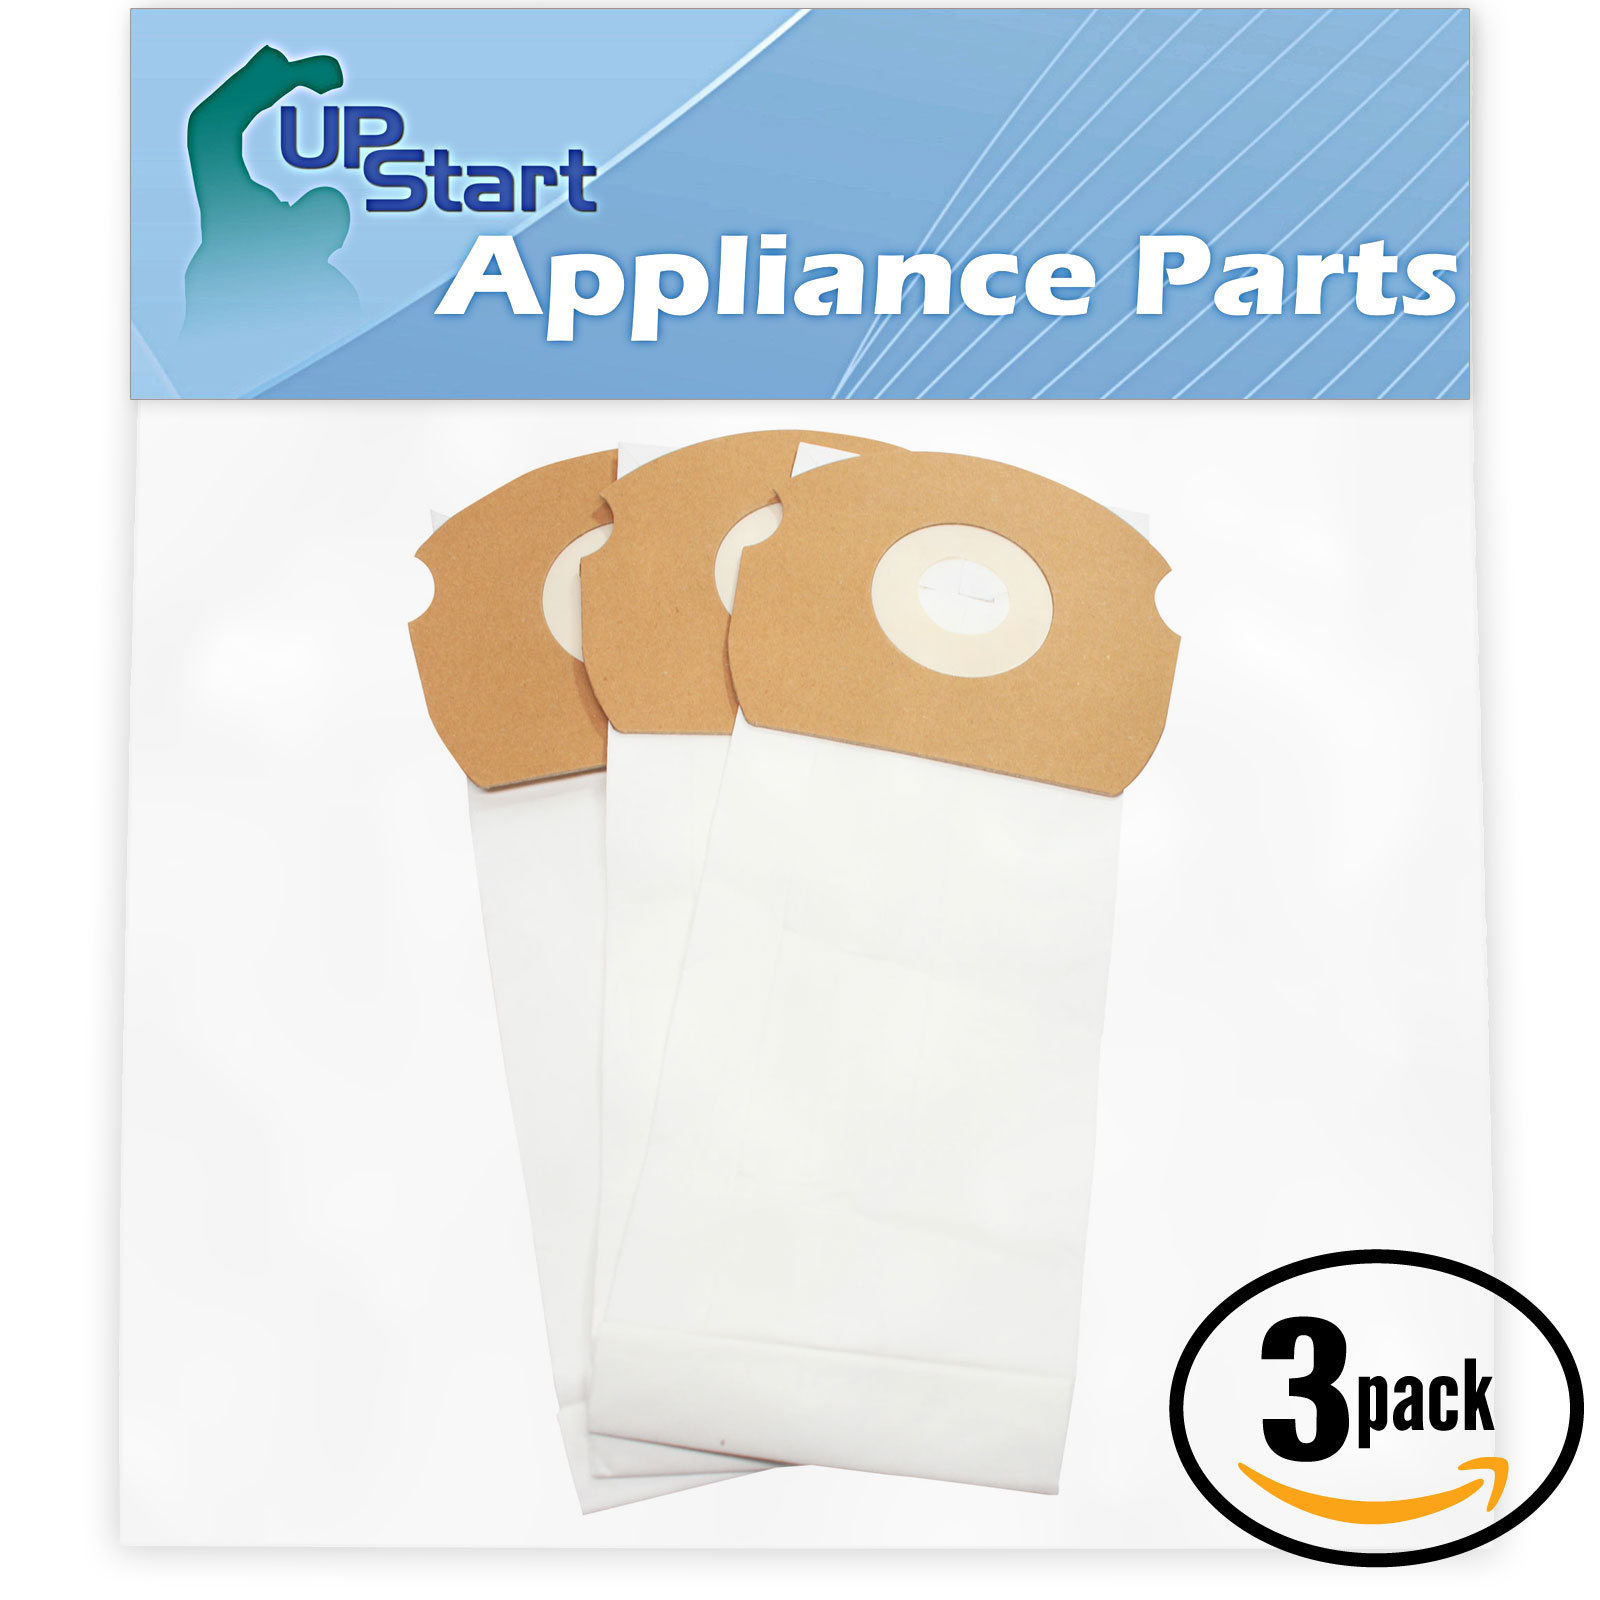 9 Replacement Eureka AirSpeed ASM1066 Vacuum Bags  - Compatible Eureka 68155, AS Vacuum Bags (3-Pack - 3 Vacuum Bags per Pack)